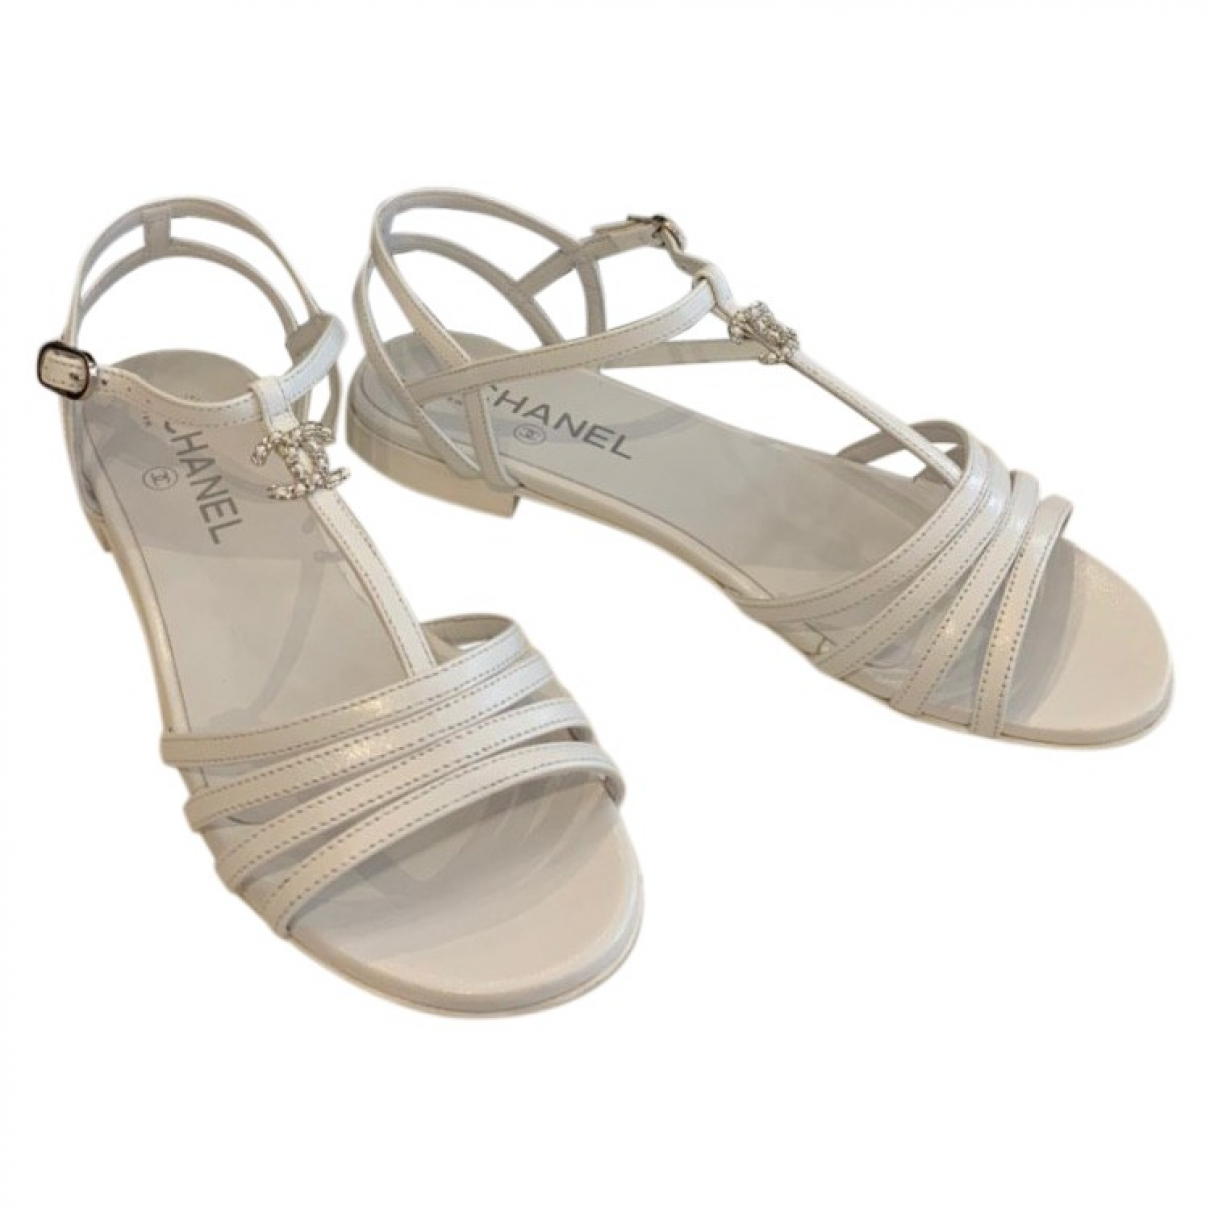 Chanel \N White Leather Sandals for Women 38.5 EU